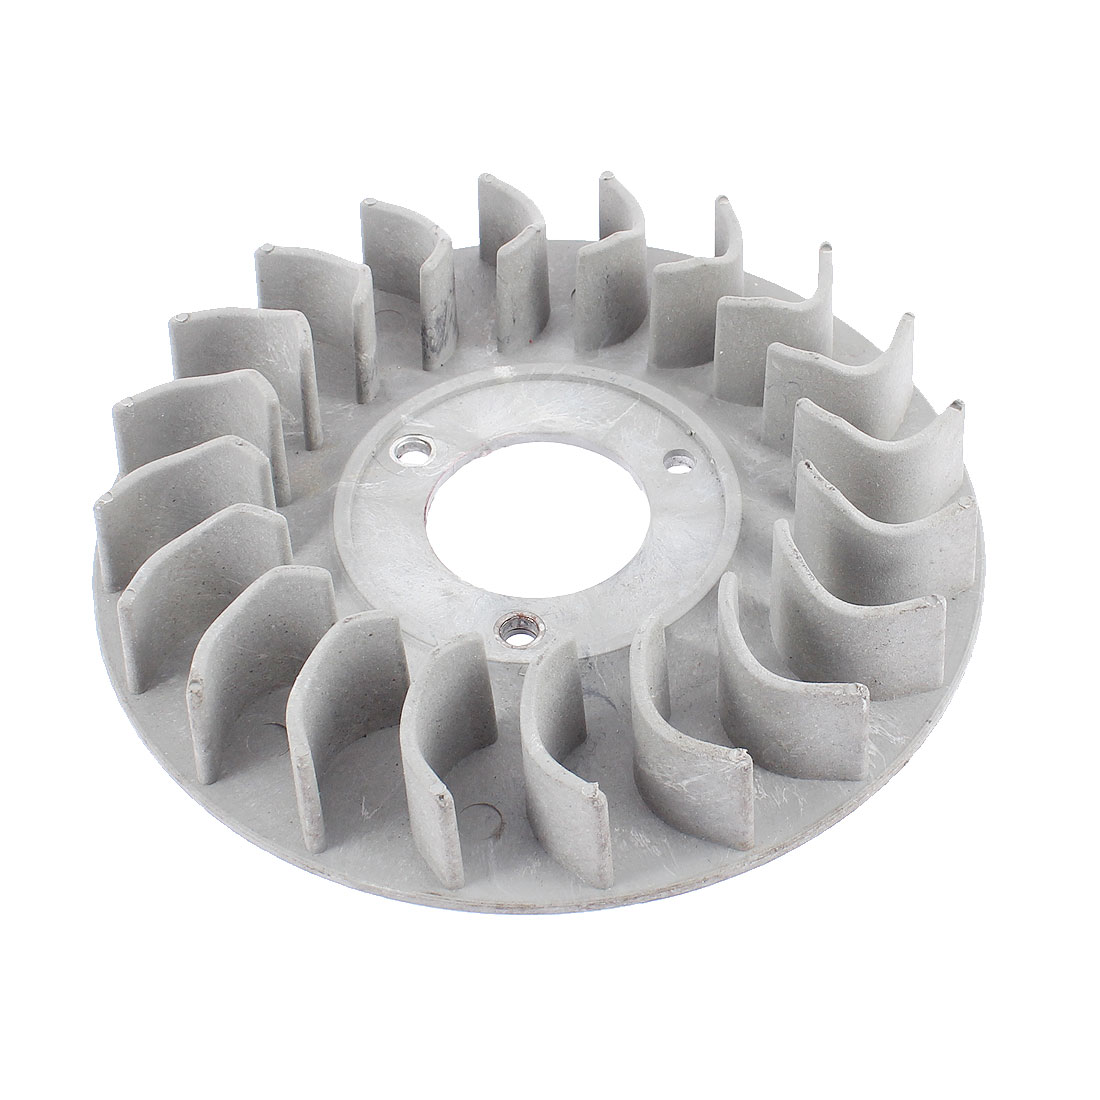 Gray Plastic 20 Teeth Gasoline Generator Motor Fan